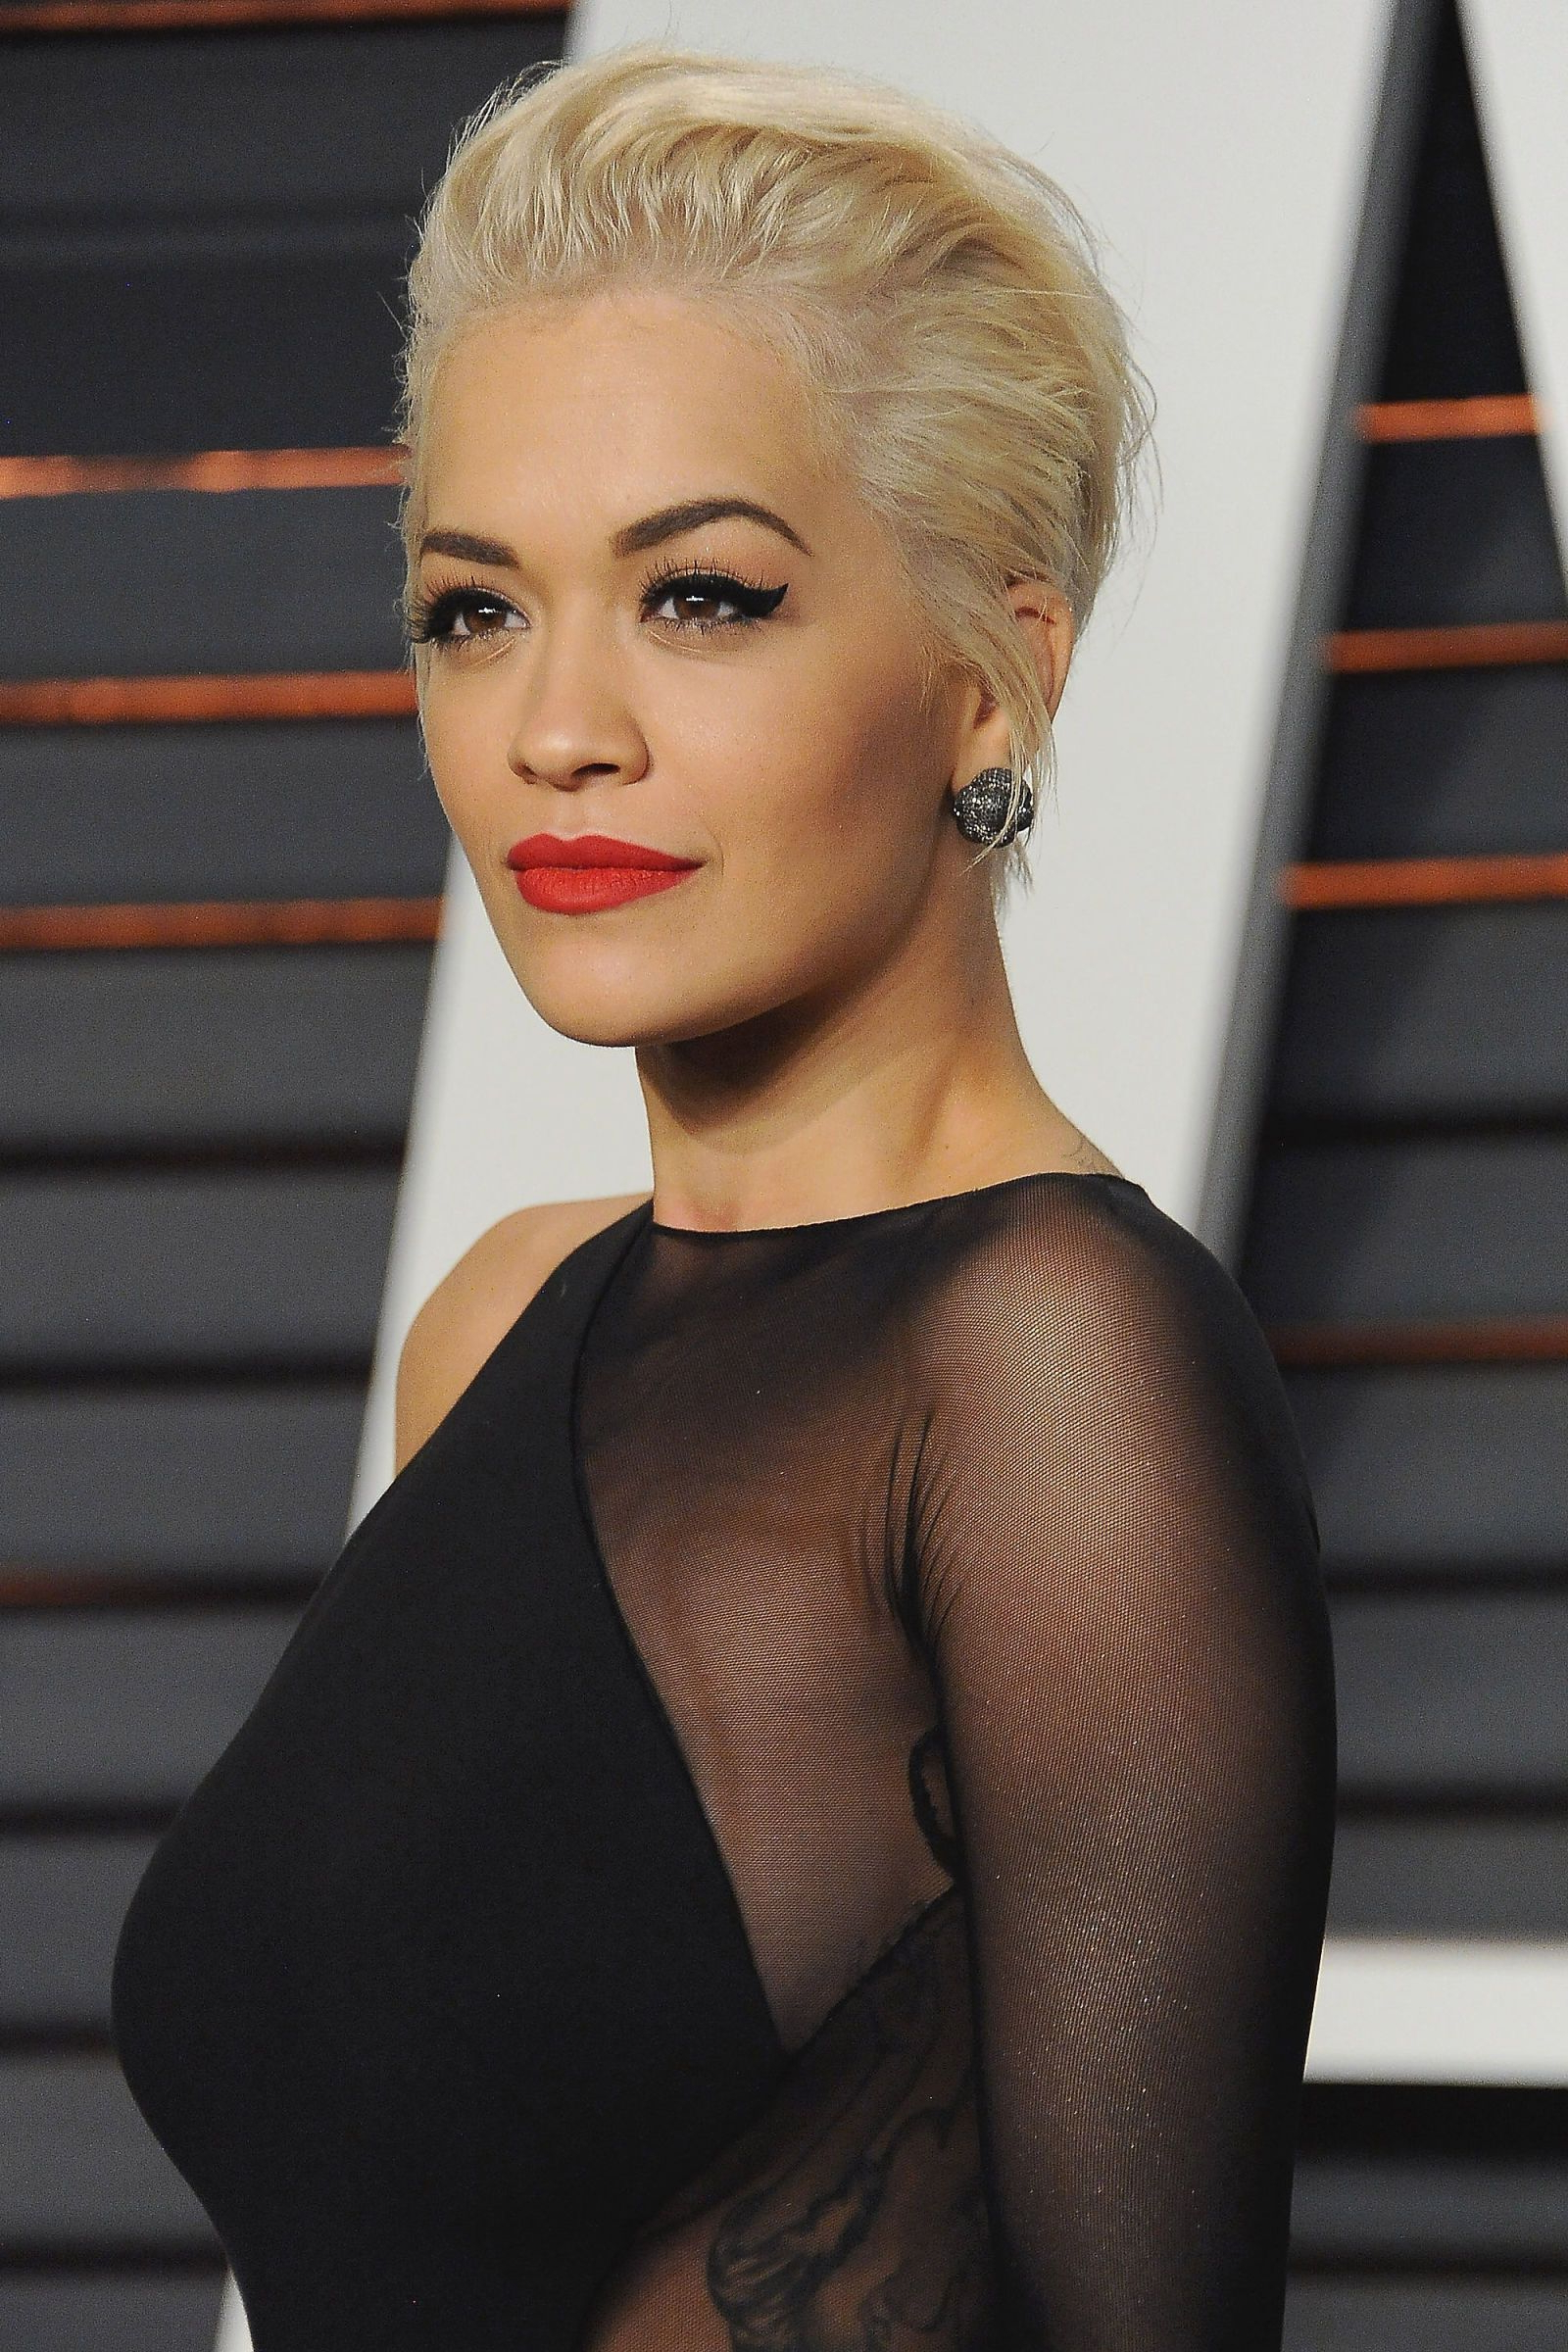 87 Cute Short Hairstyles—And How To Pull Them Off   Food   Pinterest Within Rita Ora Short Hairstyles (Gallery 19 of 25)